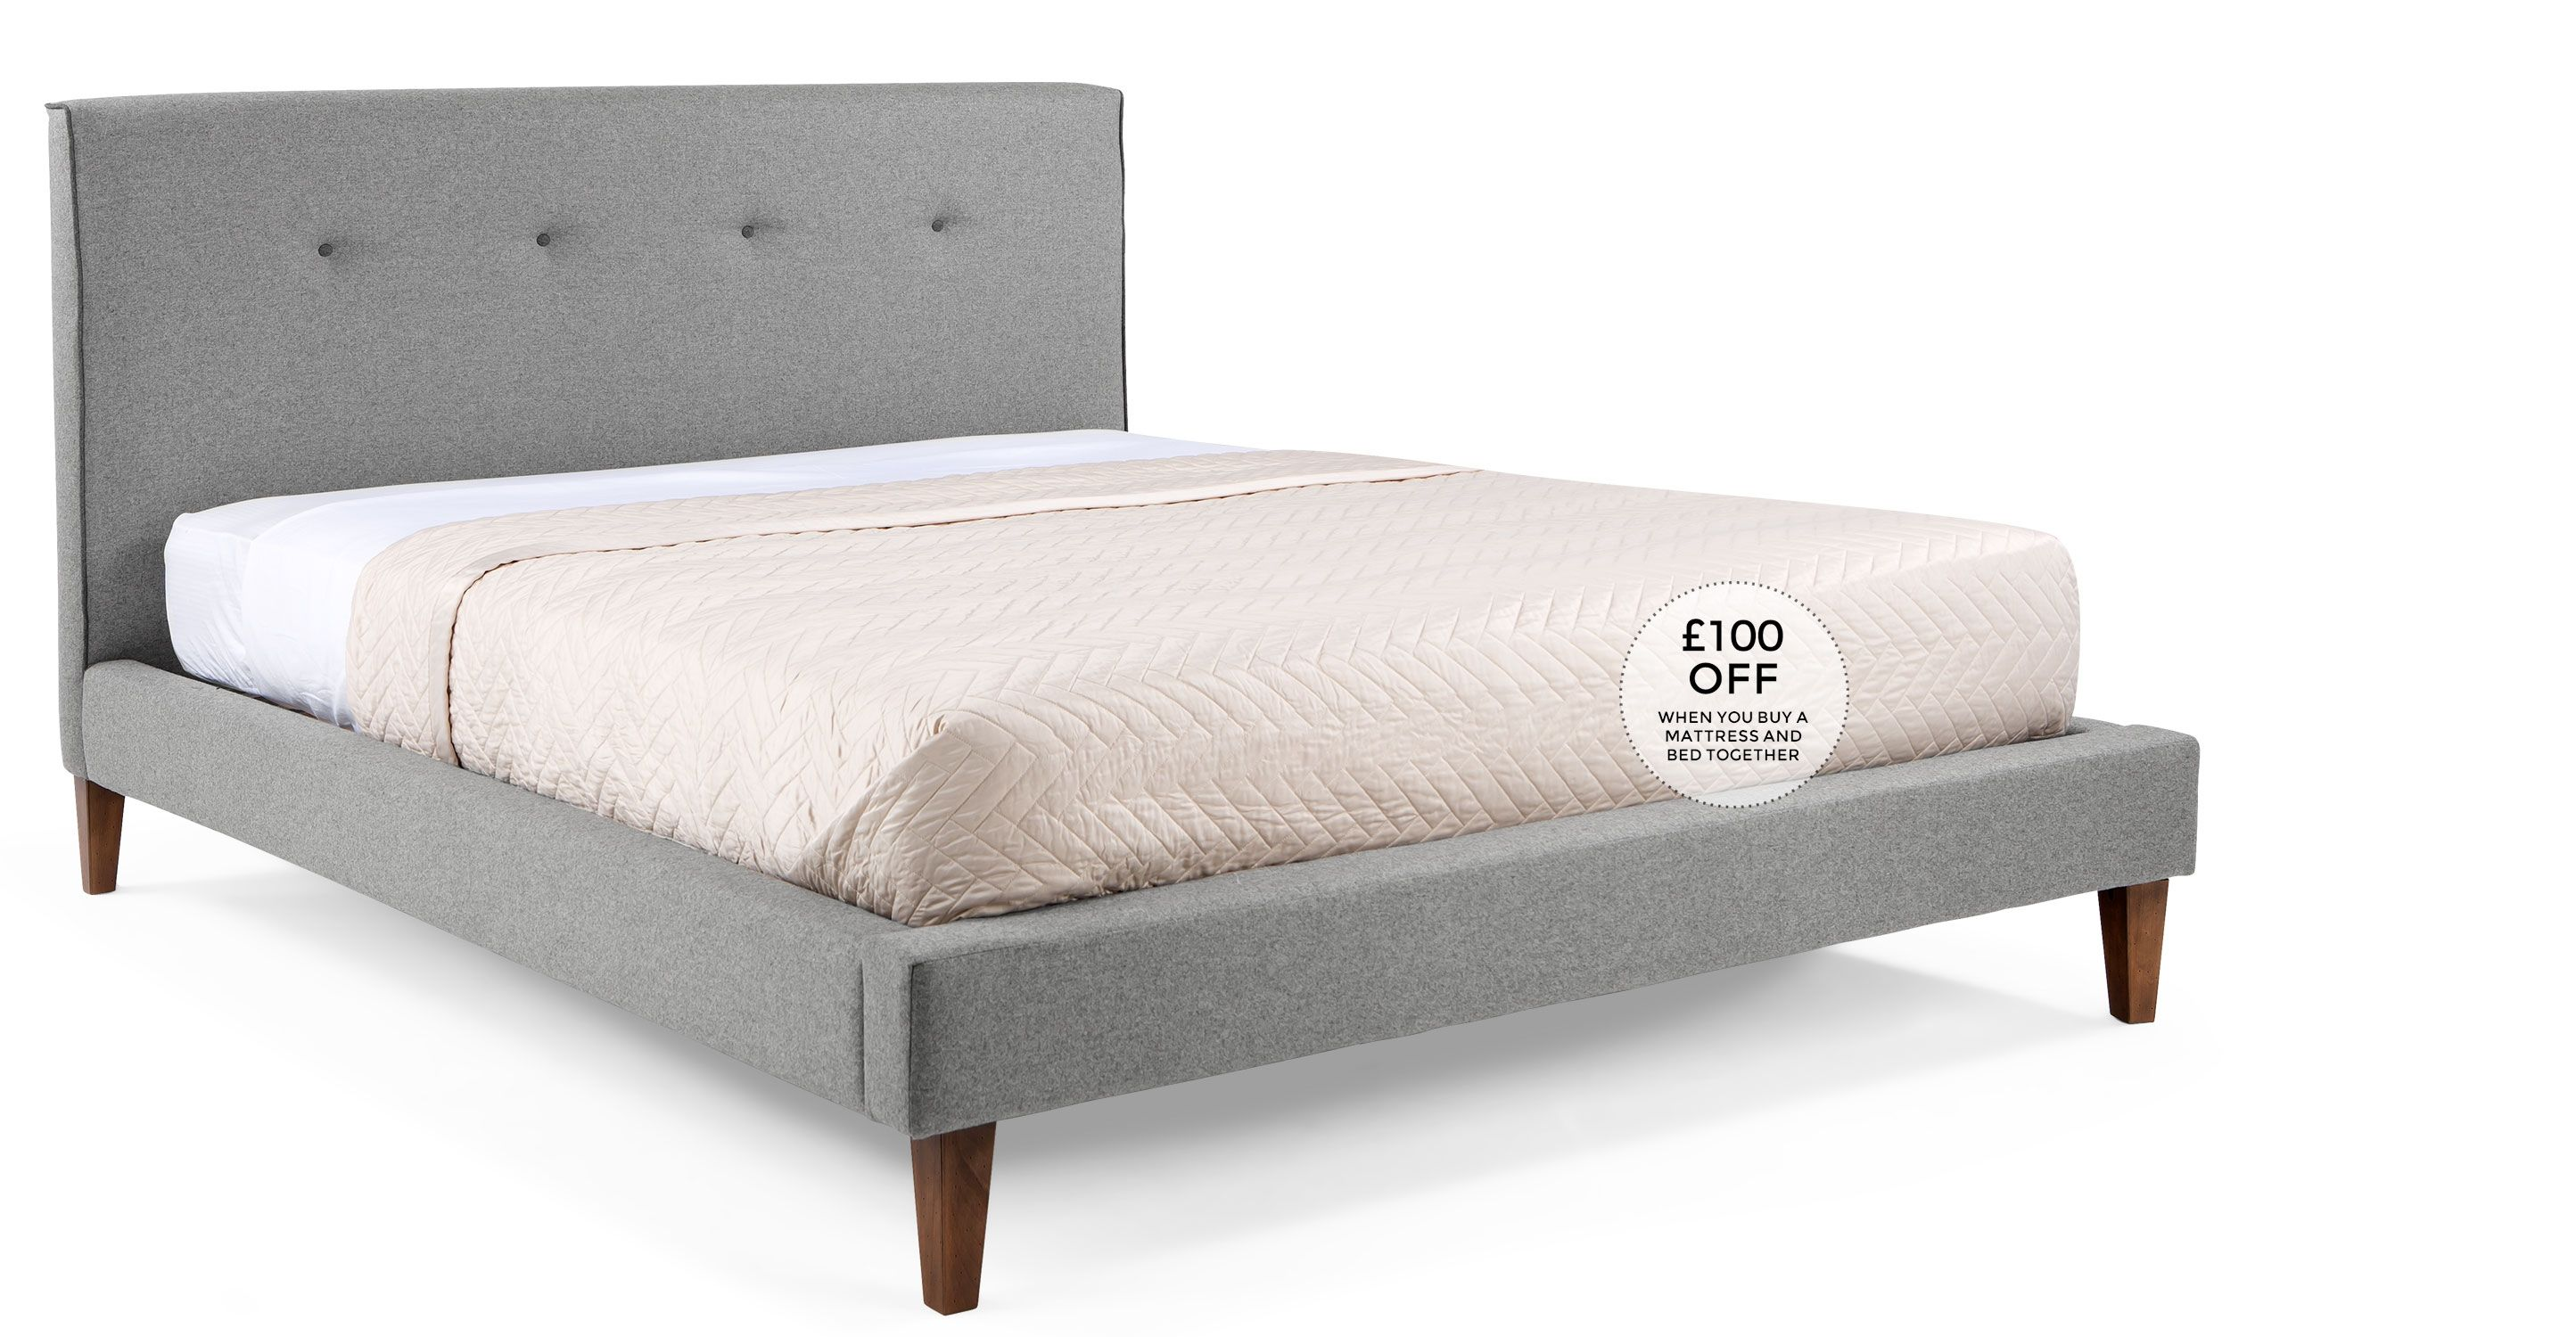 Capri 160cm X 200cm Euro King Size Bed Wolf Grey Bed King Size Bed Frame King Size Bed